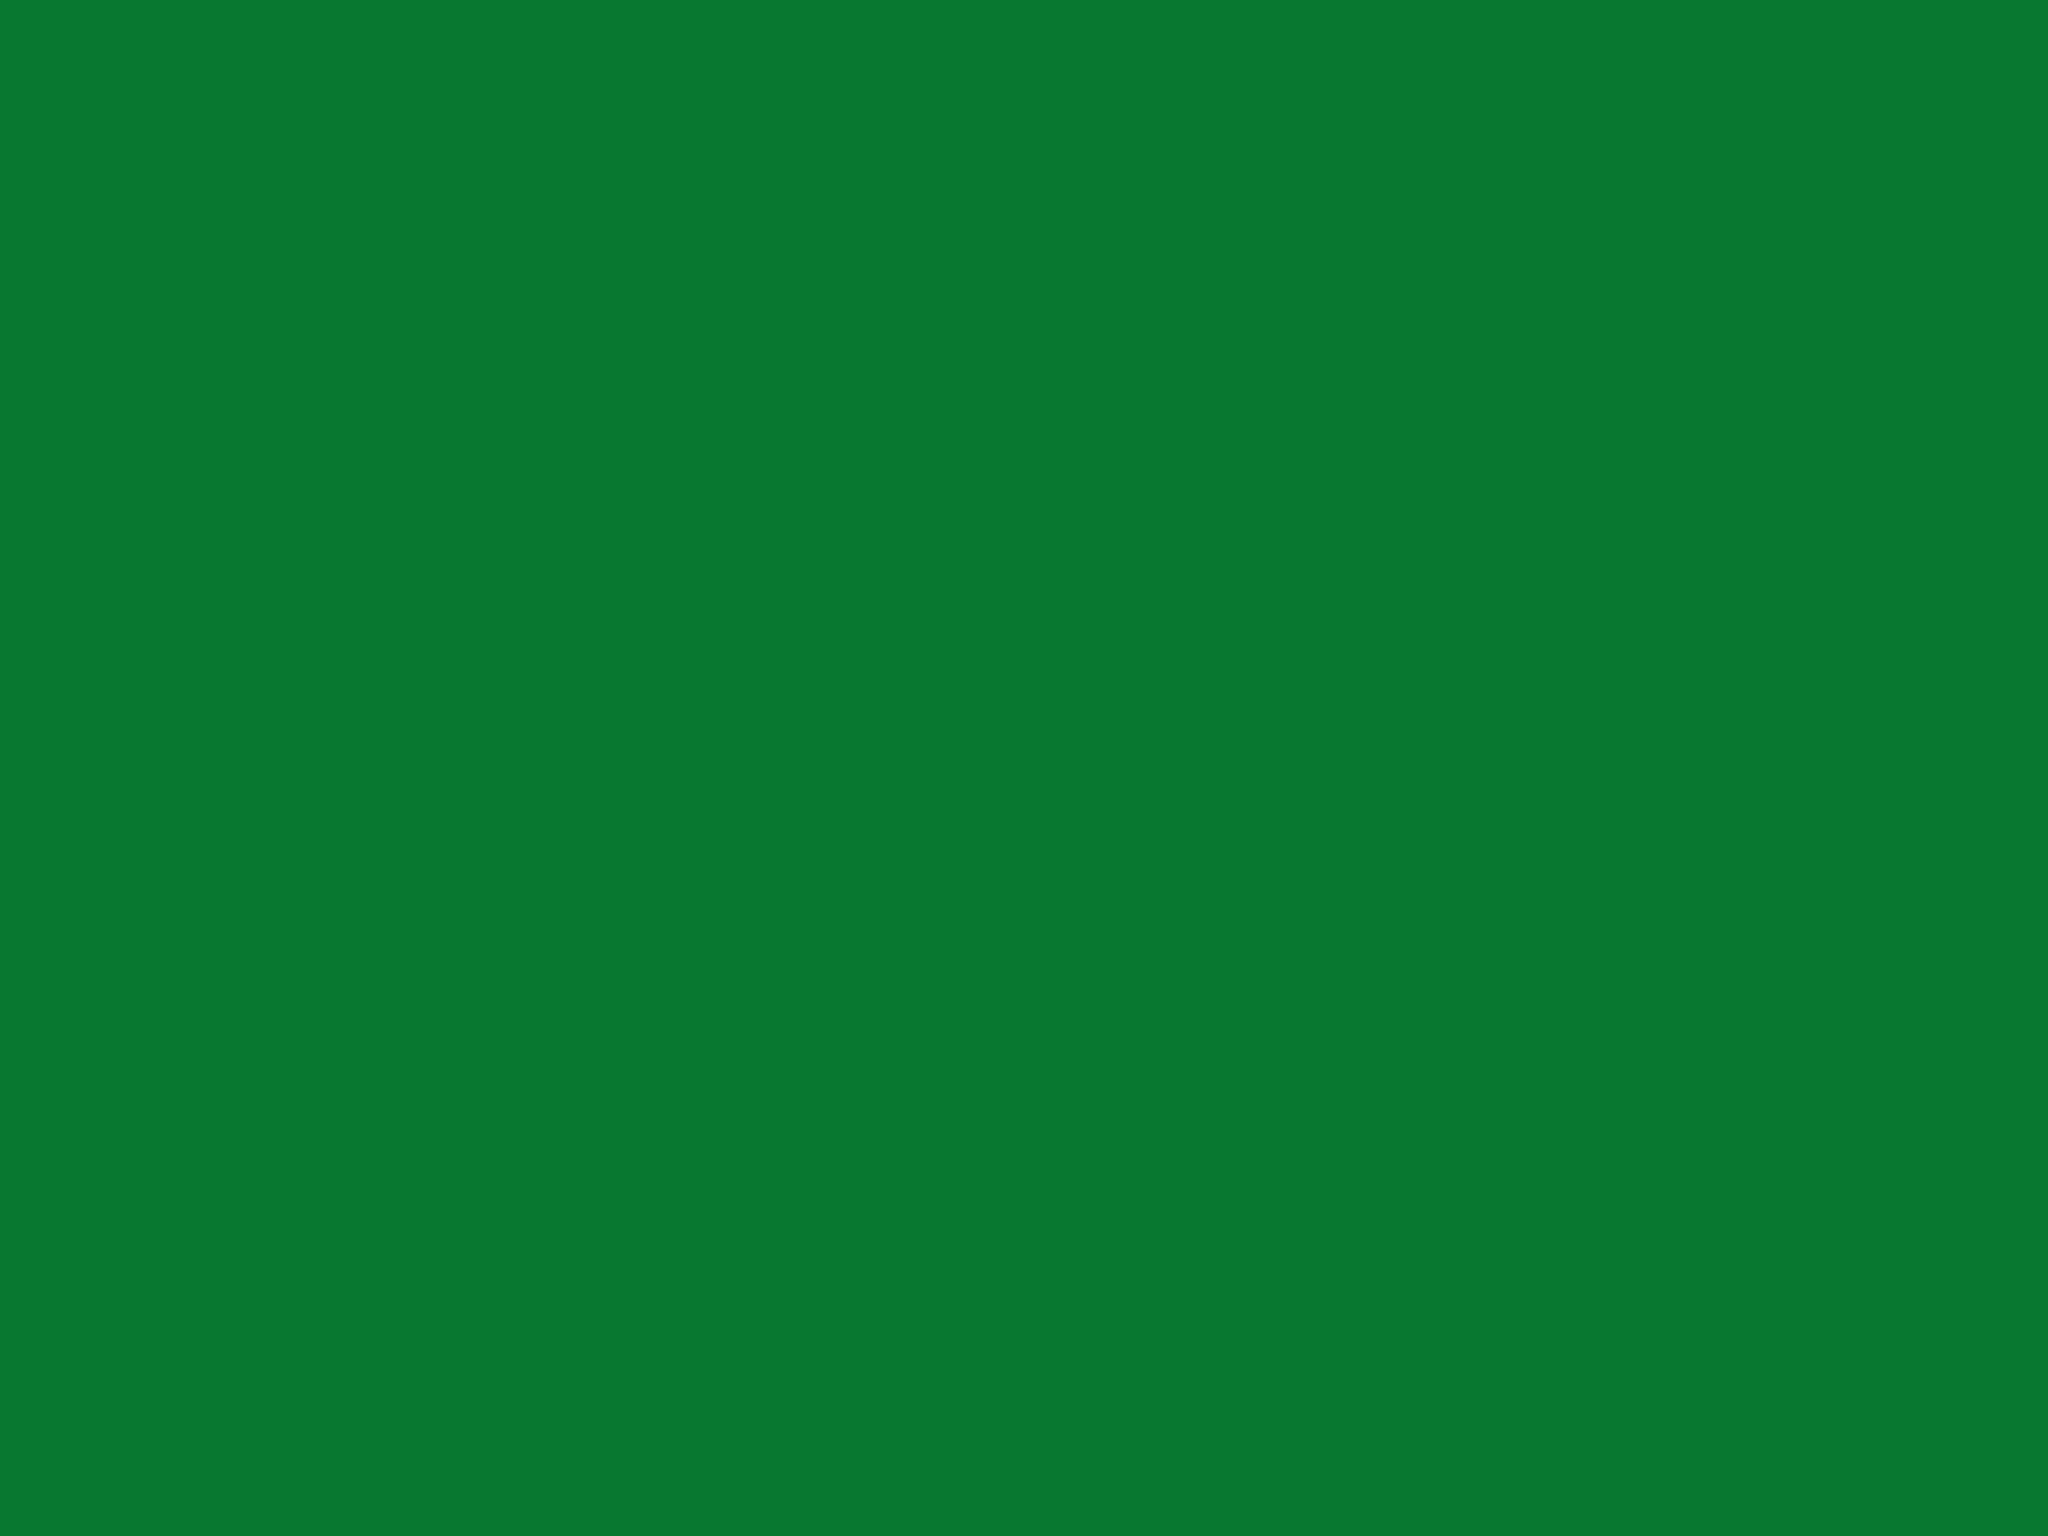 2048x1536 La Salle Green Solid Color Background